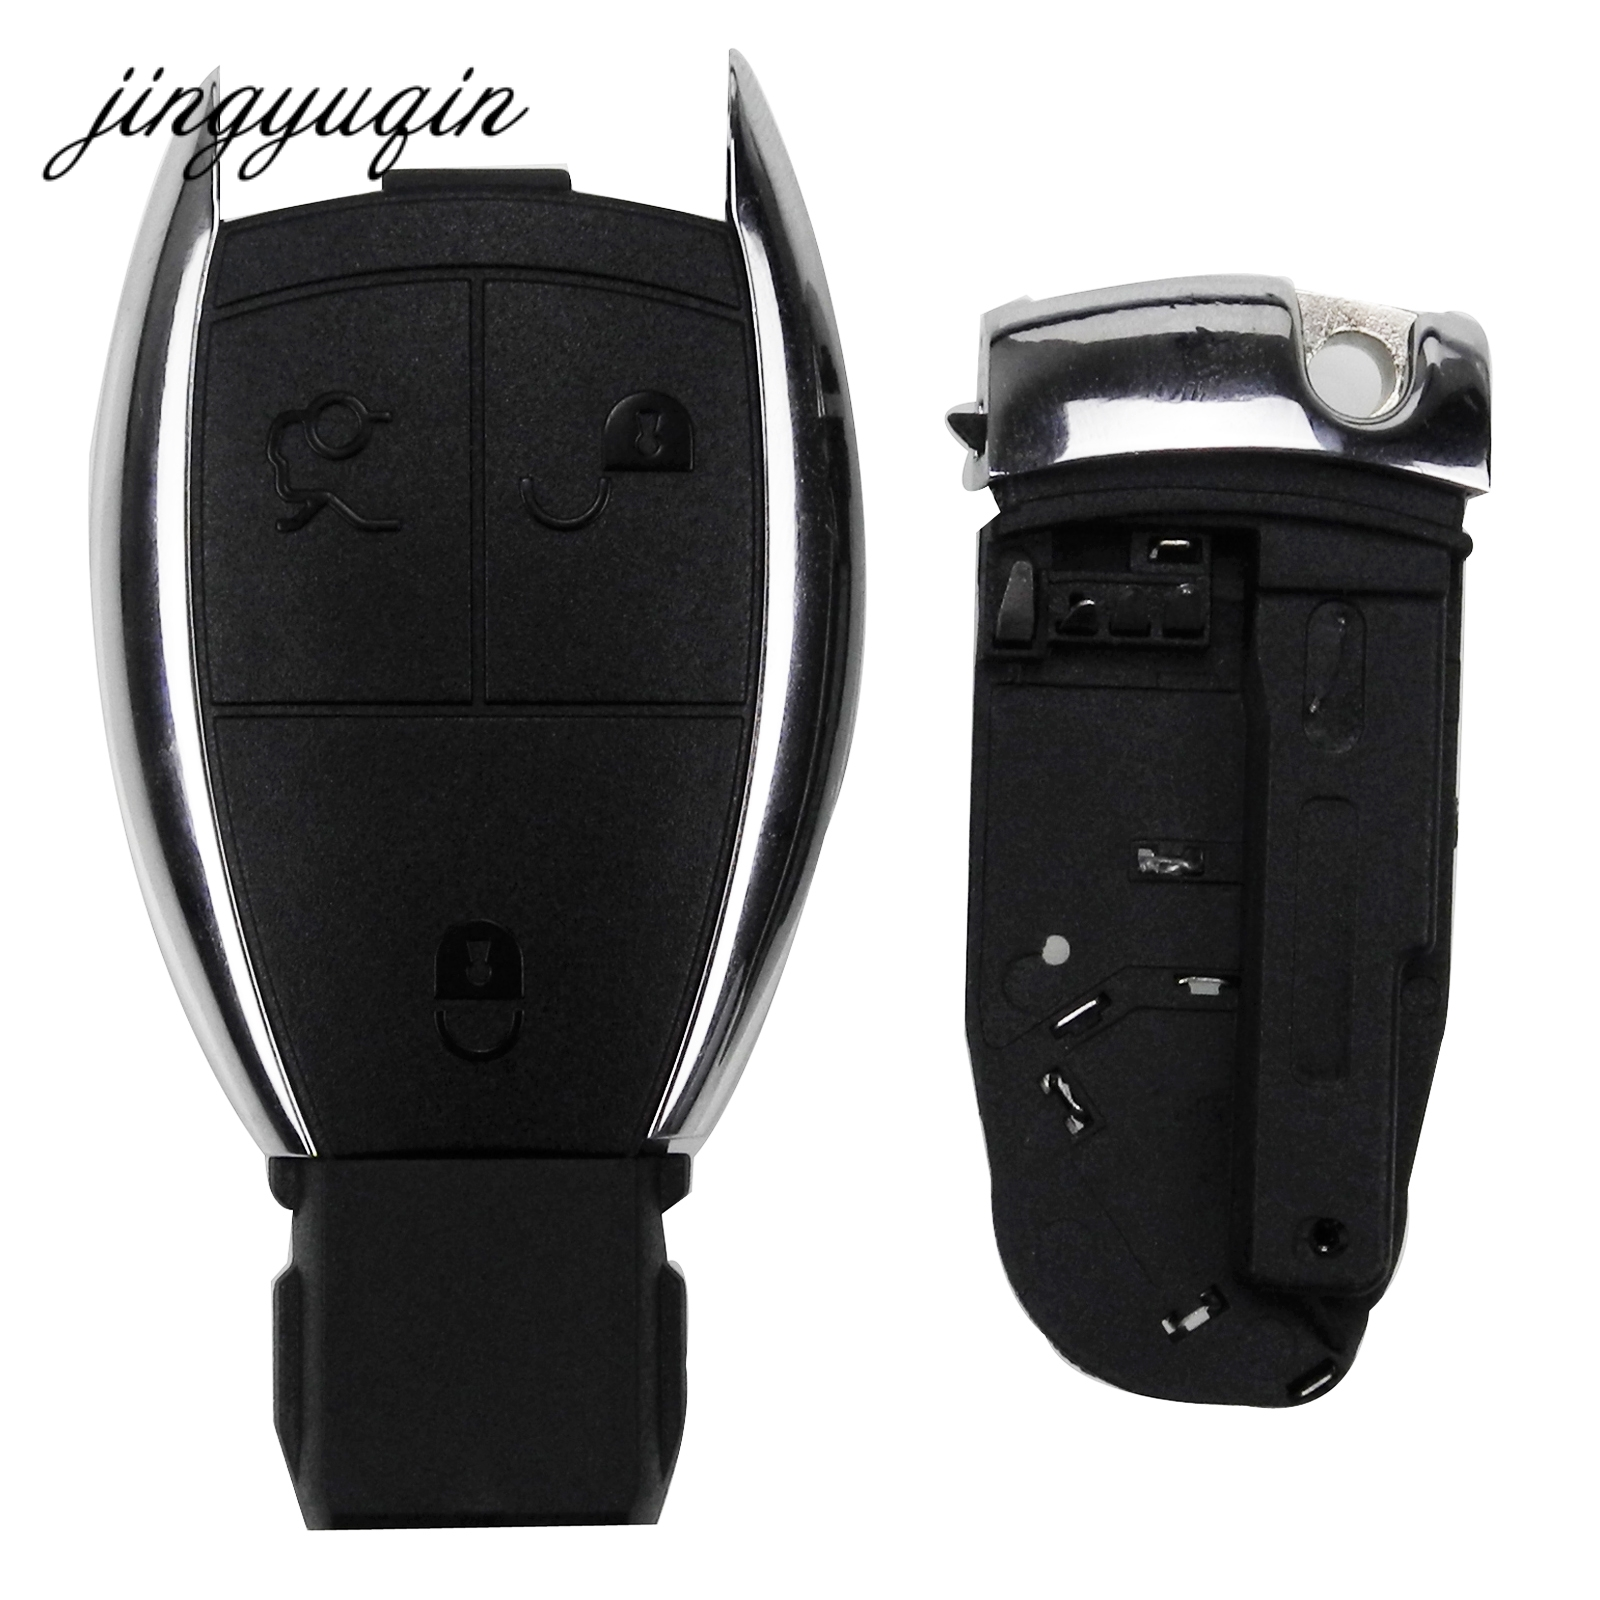 jingyuqin for MERCEDES 3 Button Remote Car Key Case Fob Shell for BENZ C E R S CL GL SL CLK SLK W203 fob + Battery Holder Clamp блесна rasanen бусинка gl gr fye r c uv длина 70 мм вес 20 гр